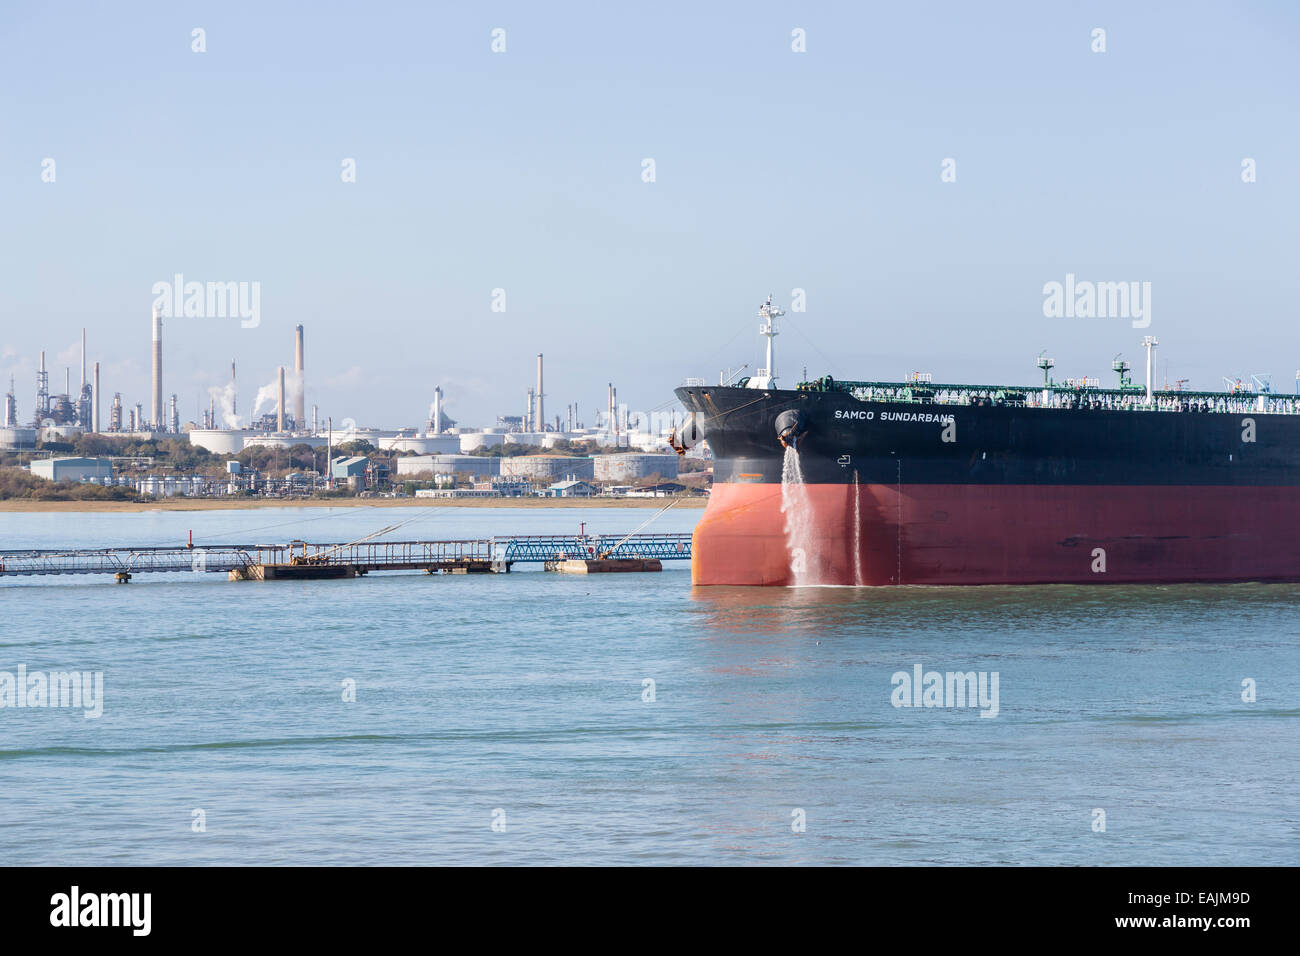 Oil tanker, 'Samco Sundarbans', moored at the Exxon Mobil oil refinery on the Solent at Fawley, Hampshire, UK Stock Photo